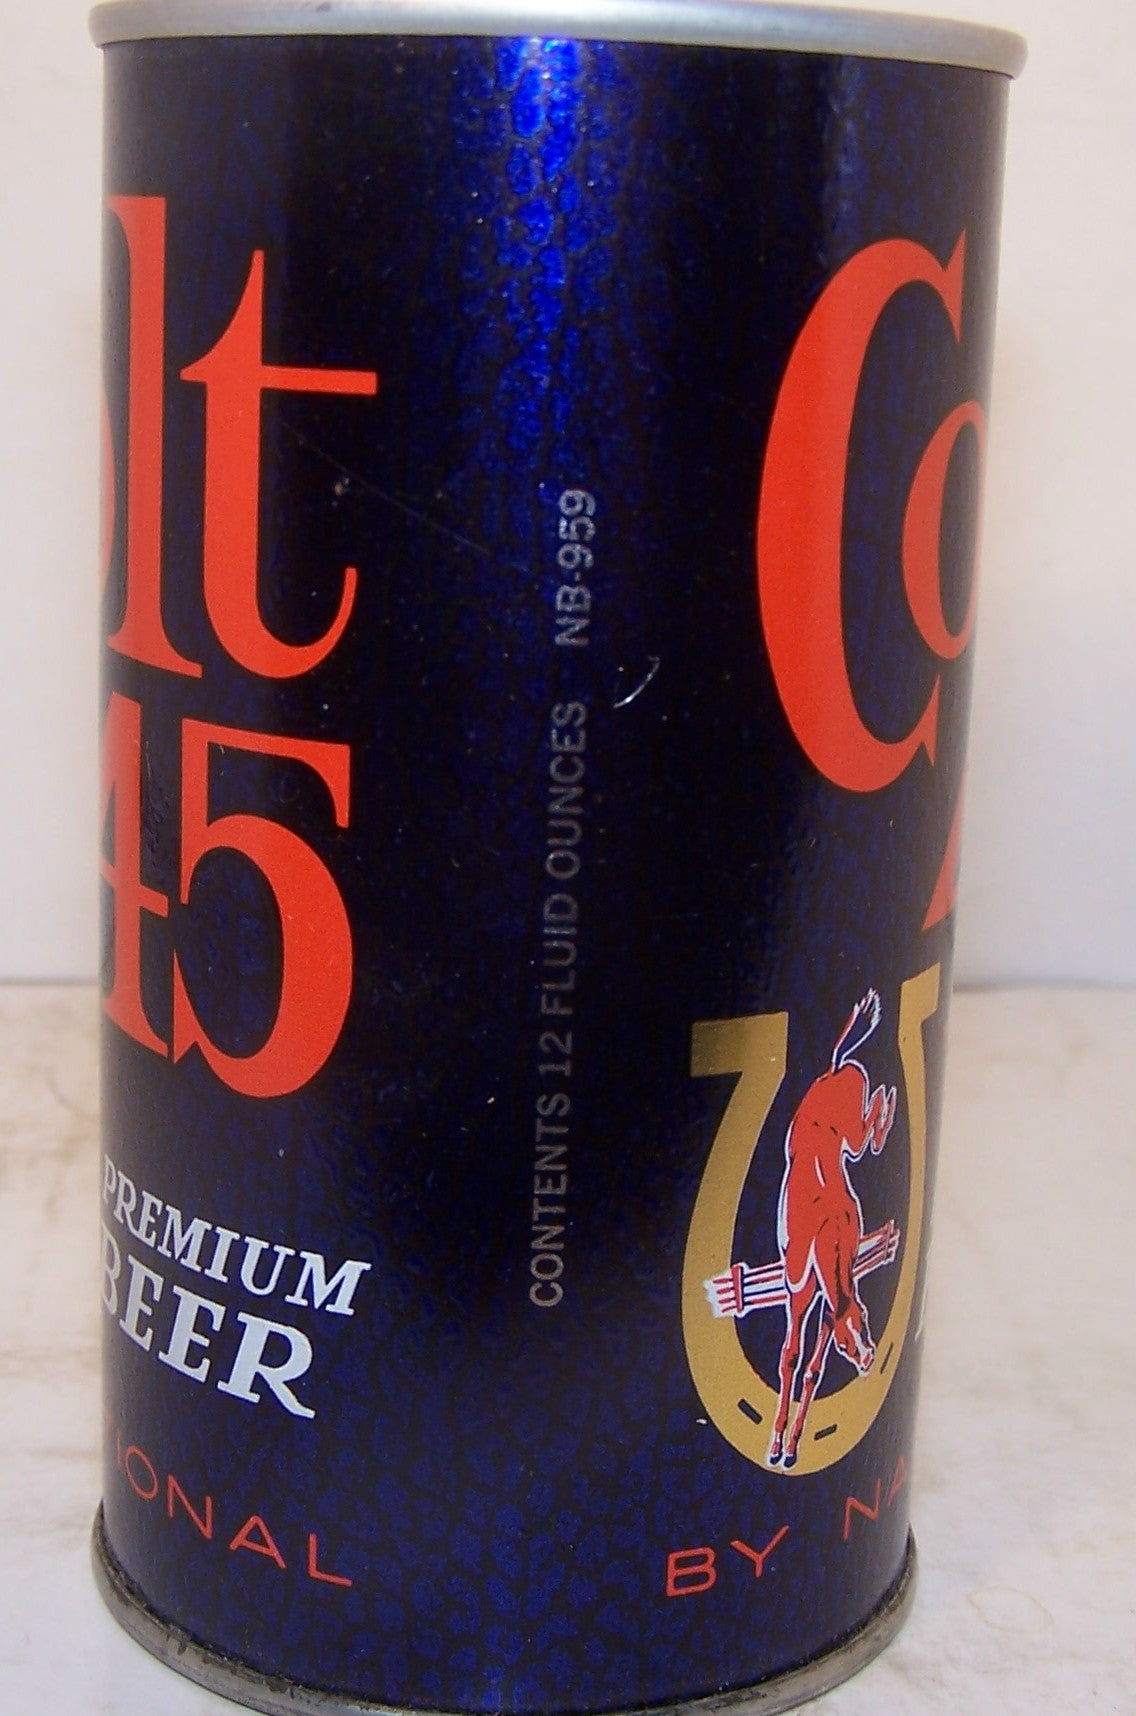 Colt 45 premium beer, USBC II 229-33, rolled test can, grade 1/1+ Sold on 02/03/17